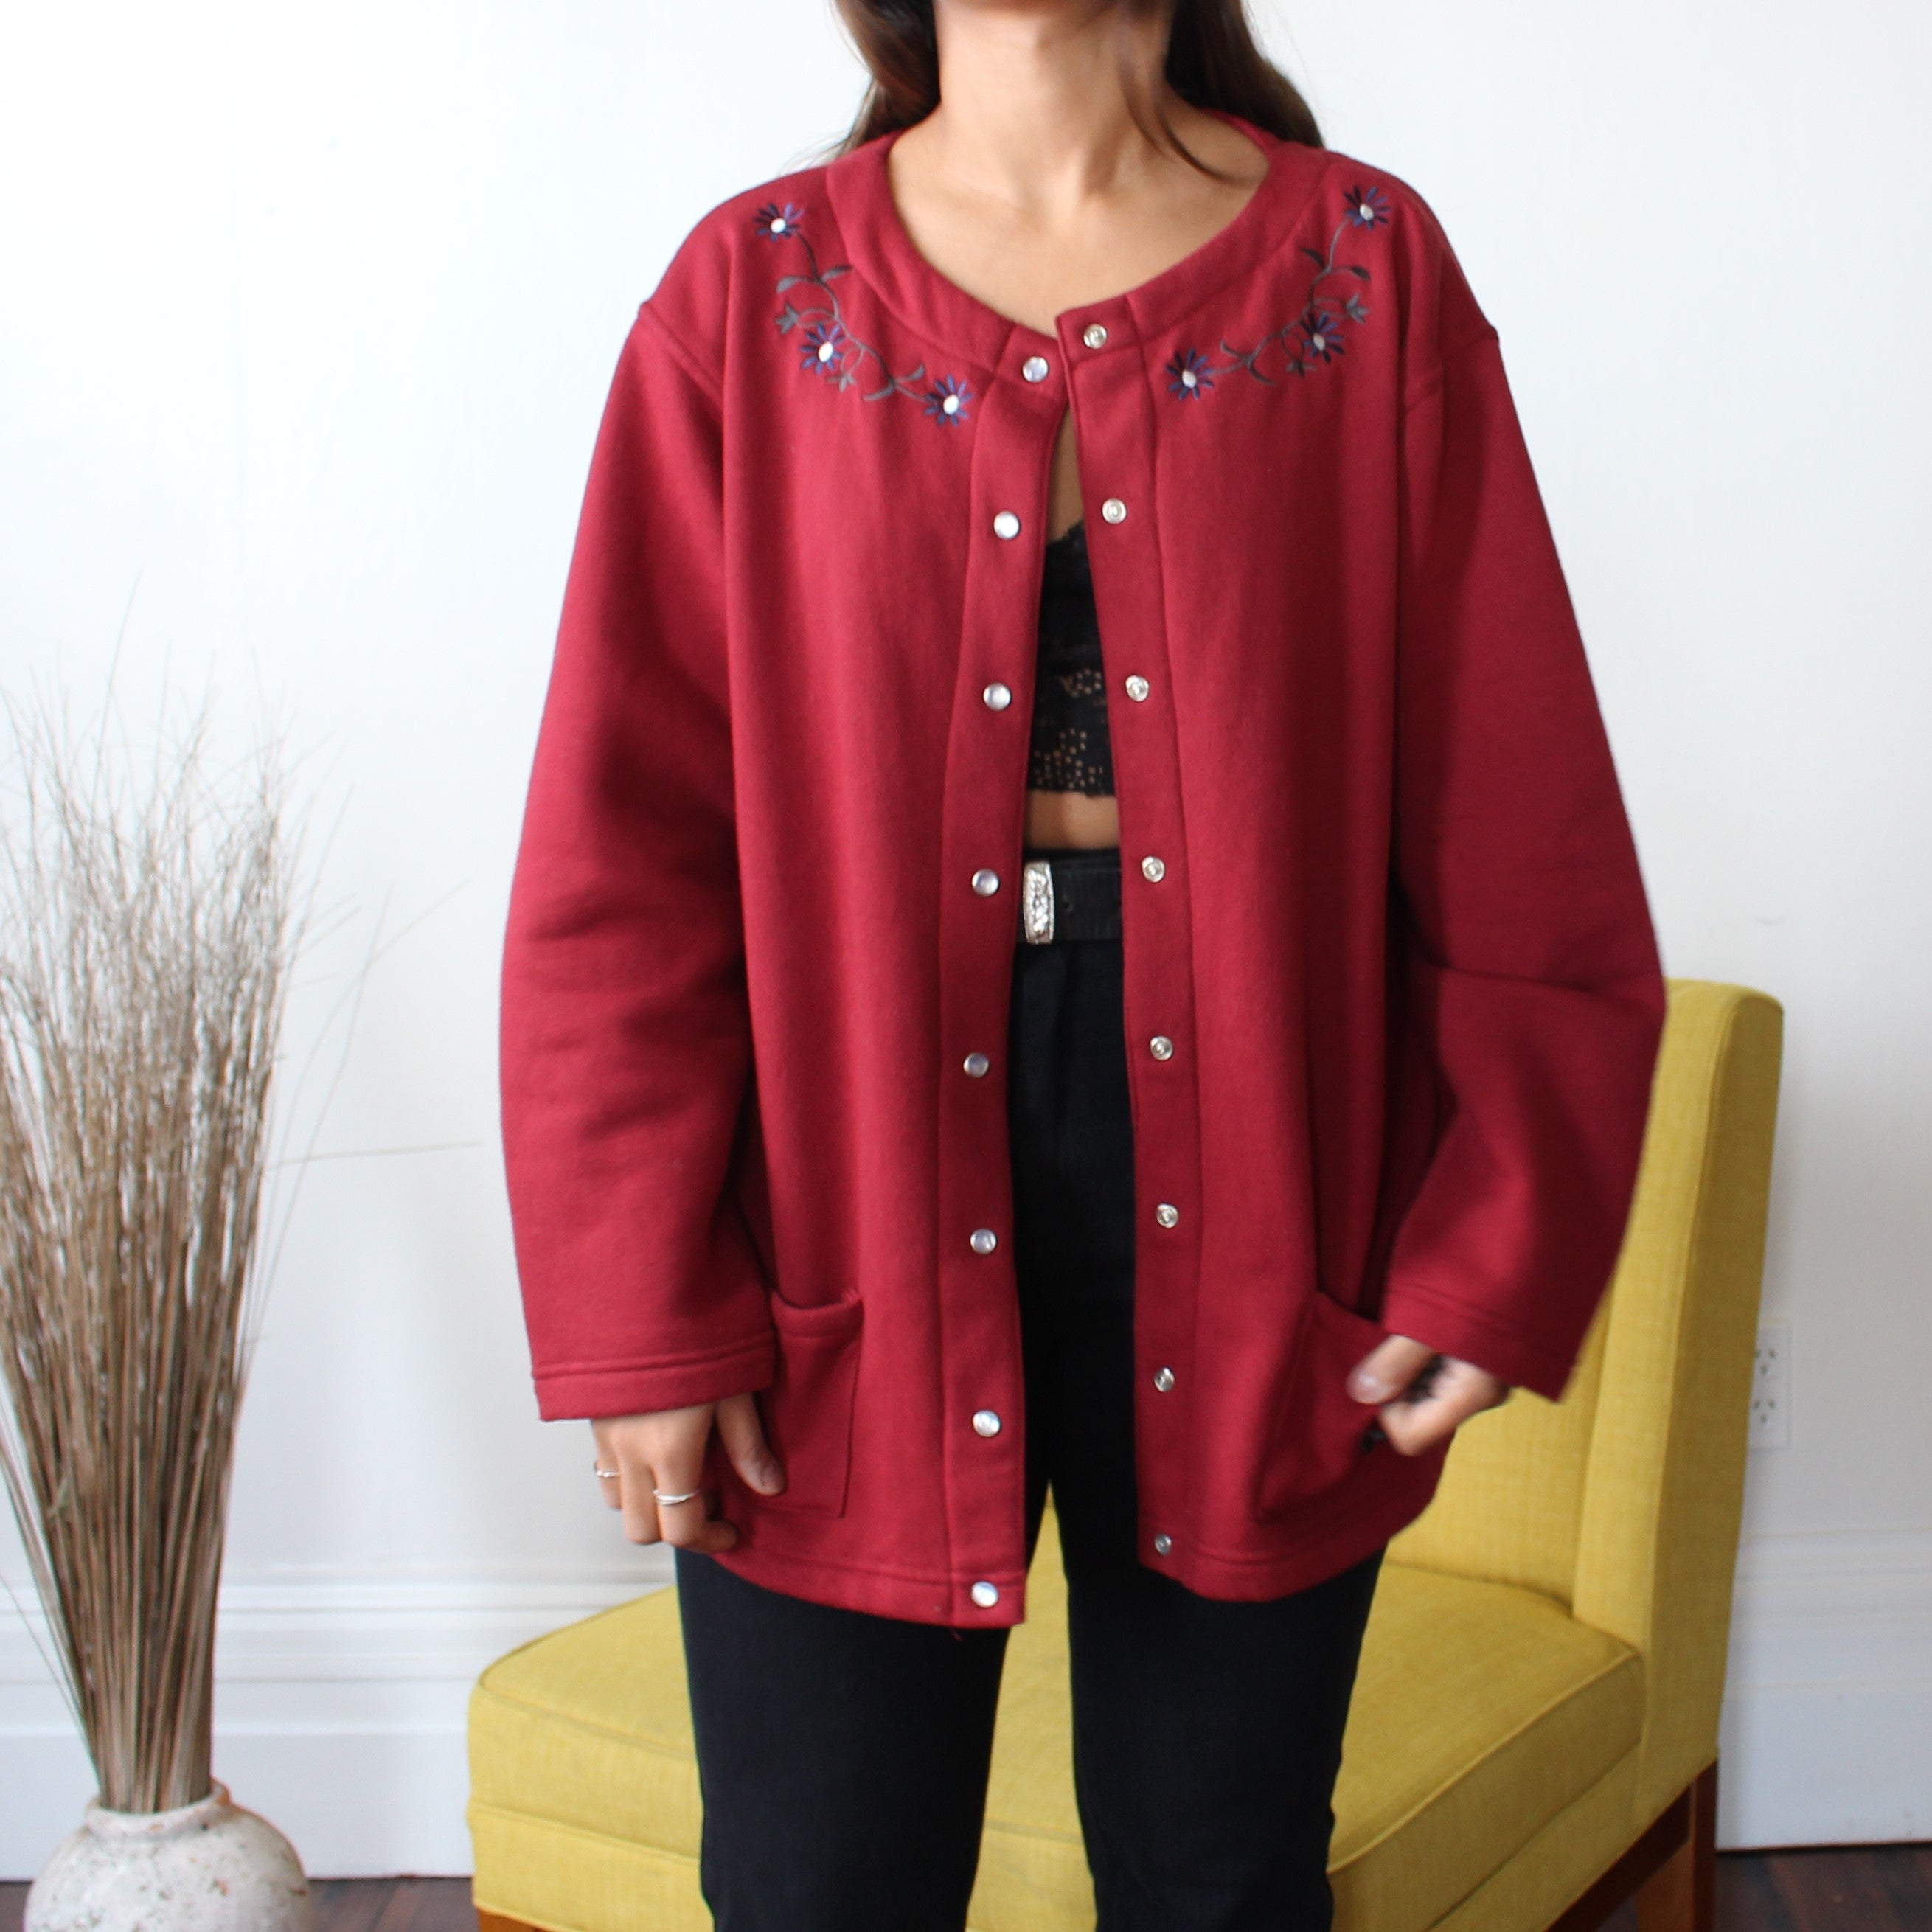 Floral Fiend Red Bomber Jumper - ZoMa Collective